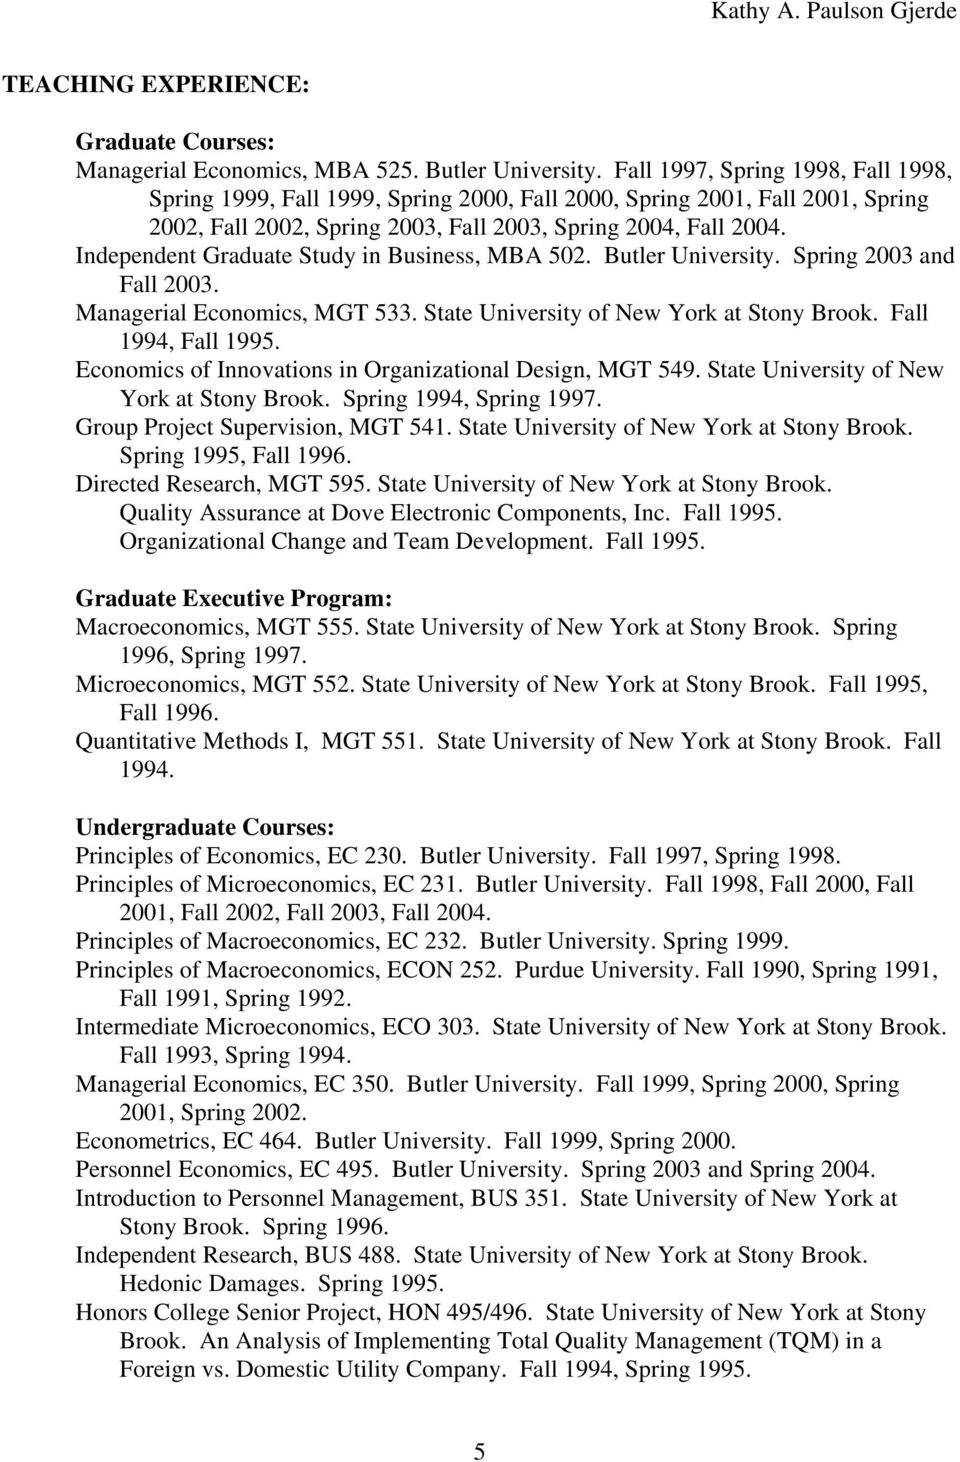 Independent Graduate Study in Business, MBA 502. Butler University. Spring 2003 and Fall 2003. Managerial Economics, MGT 533. State University of New York at Stony Brook. Fall 1994, Fall 1995.